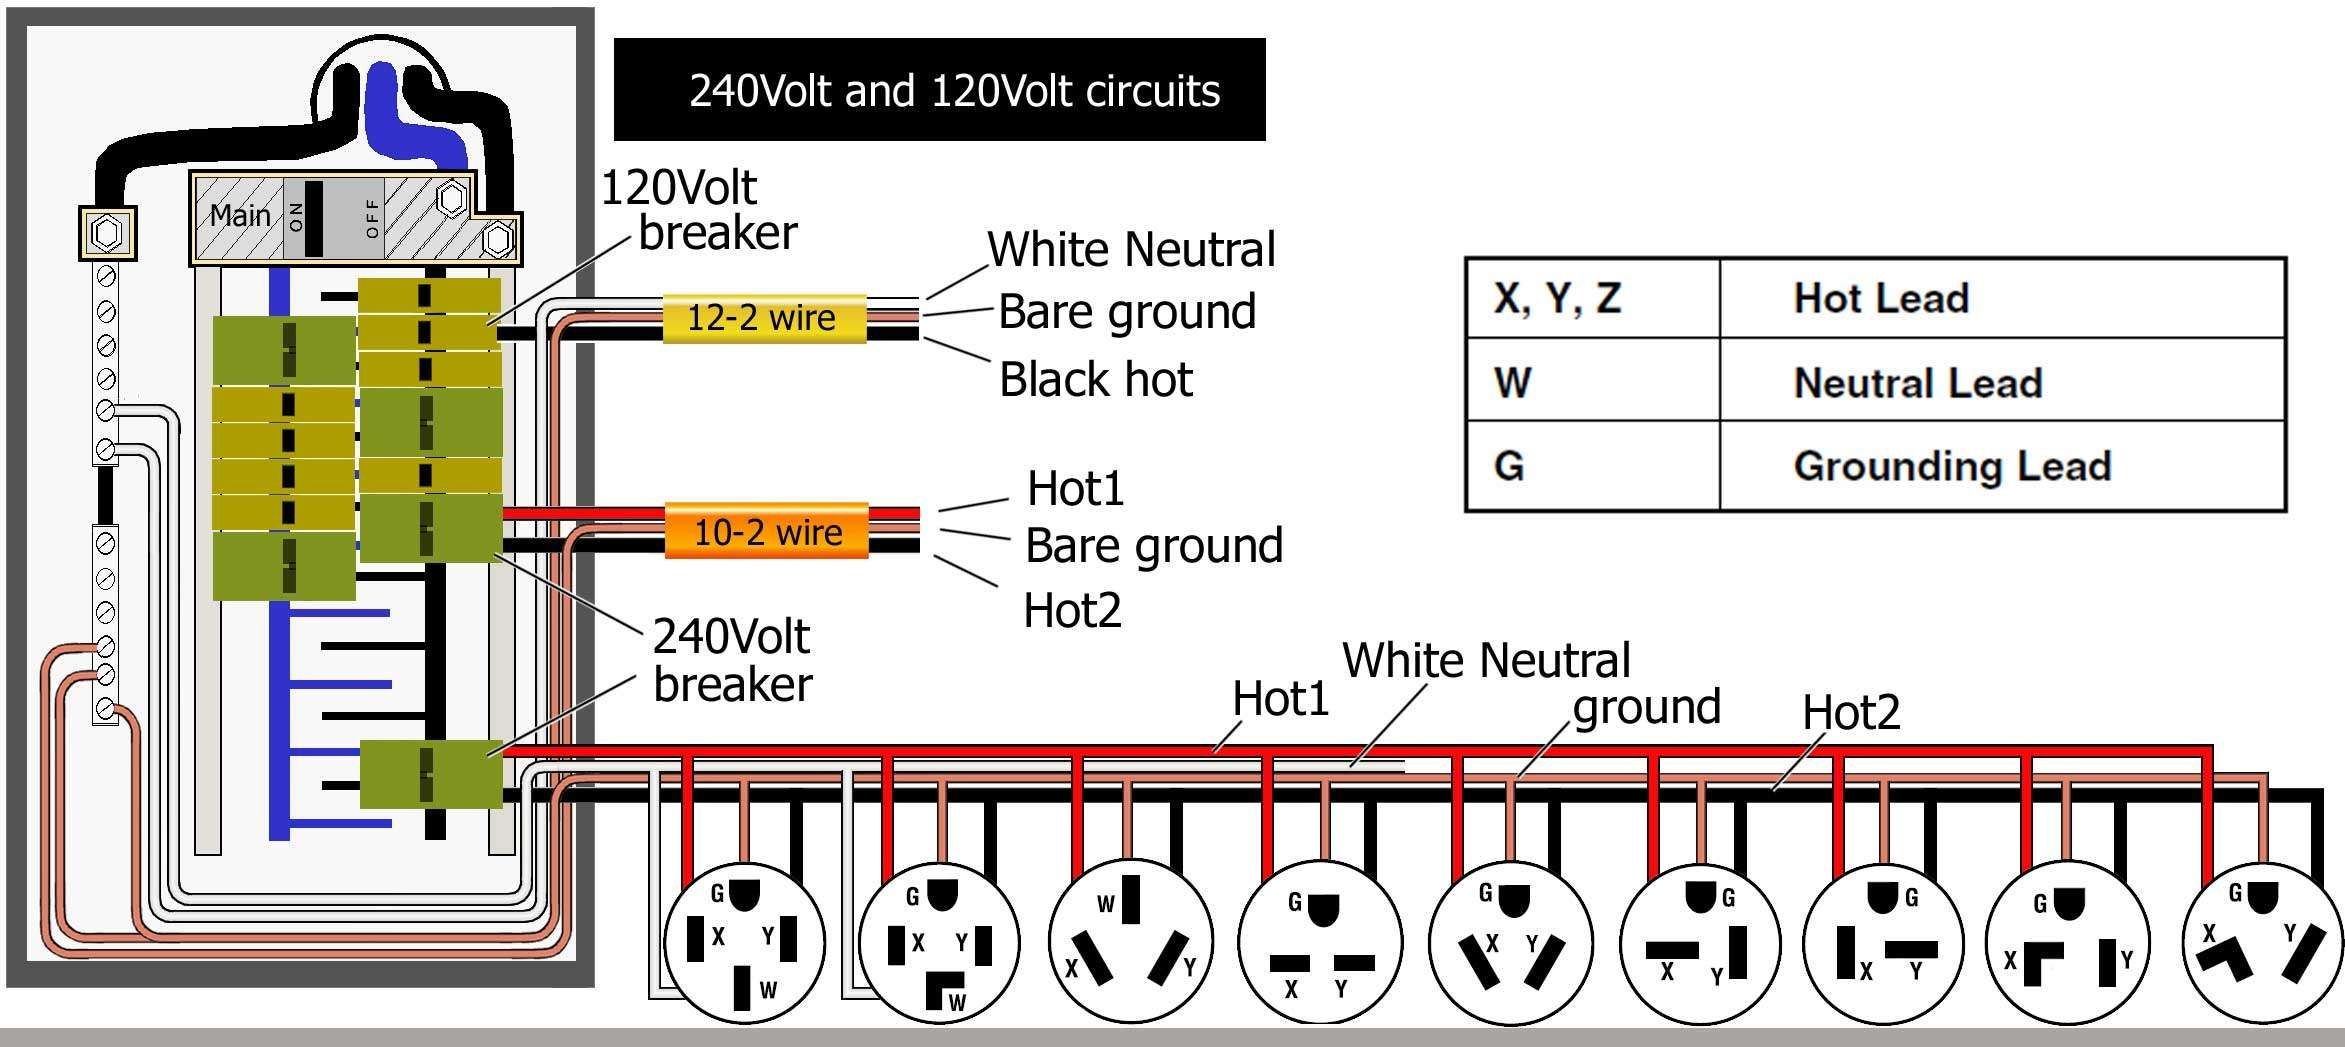 wiring diagram outlets beautiful wiring diagram outlets splendid line wiring diagram help signalsbrake light code for [ 2345 x 1047 Pixel ]